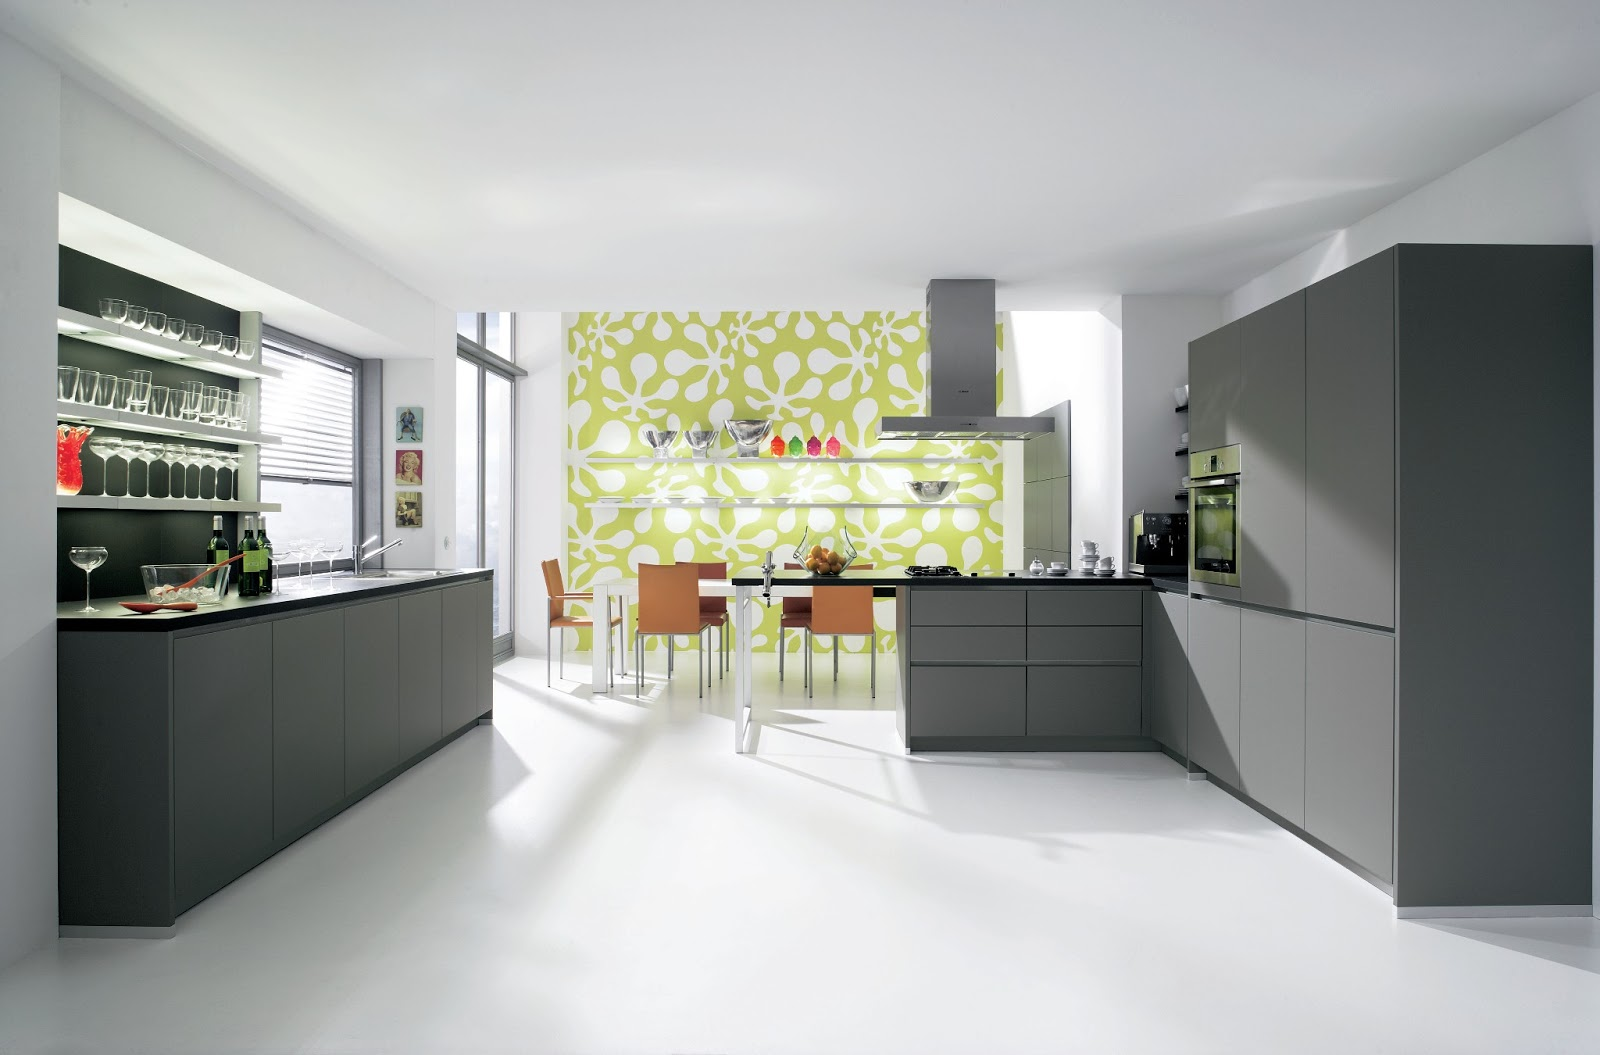 Cuisine design laqu e mate gris anthracite for Cuisine design grise